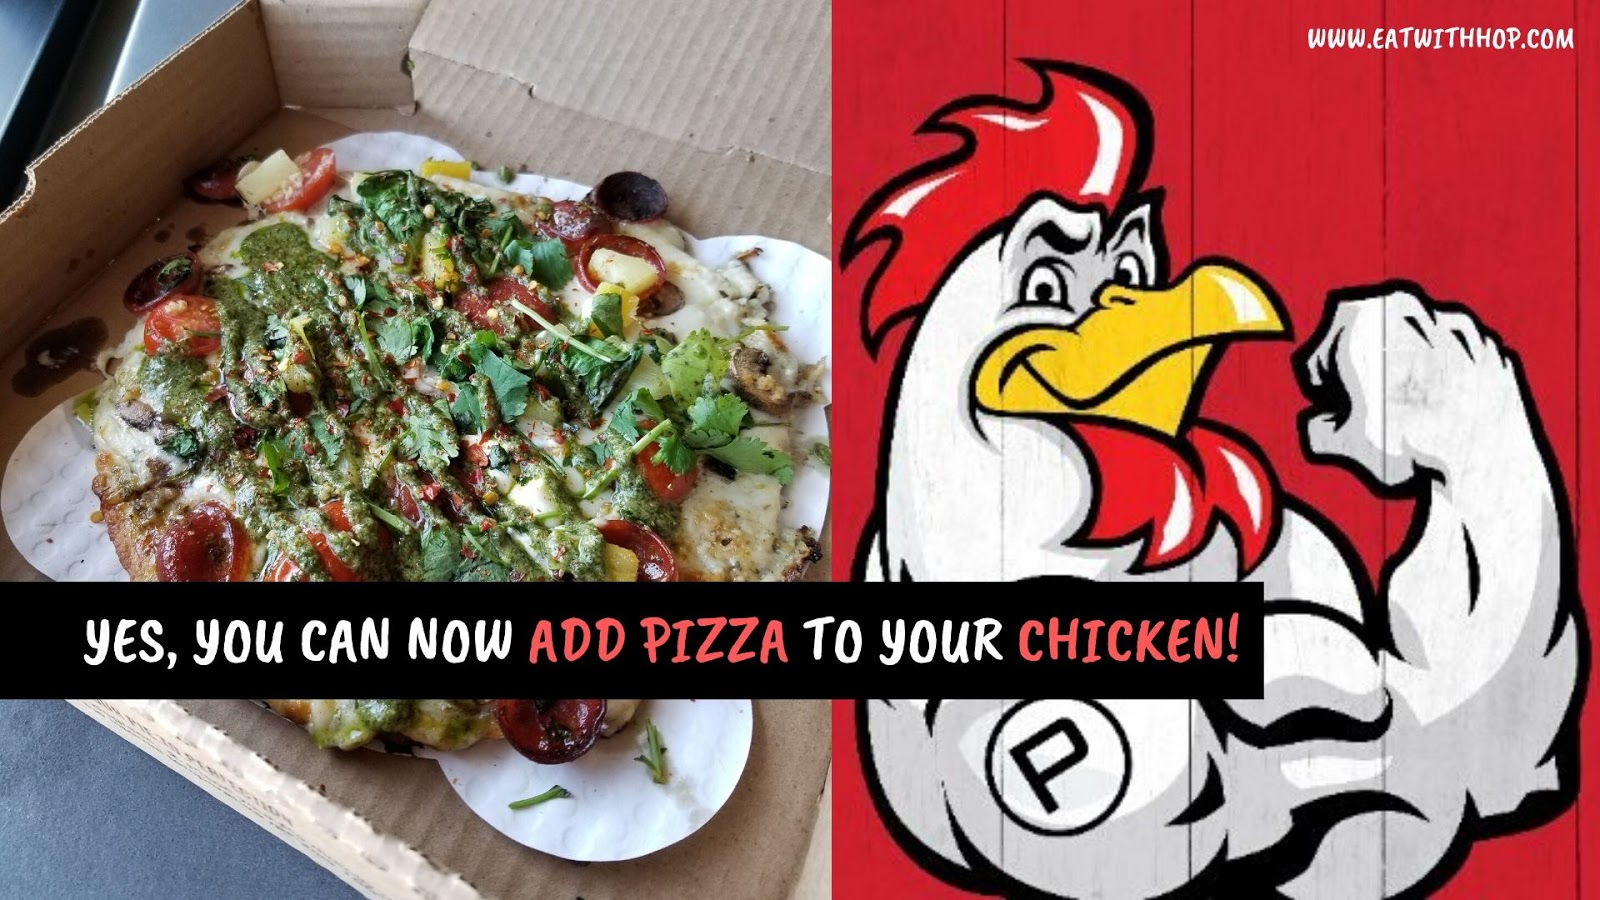 Pieology Now Lets You Add Pizza To Your Chicken and It's Keto-Certified